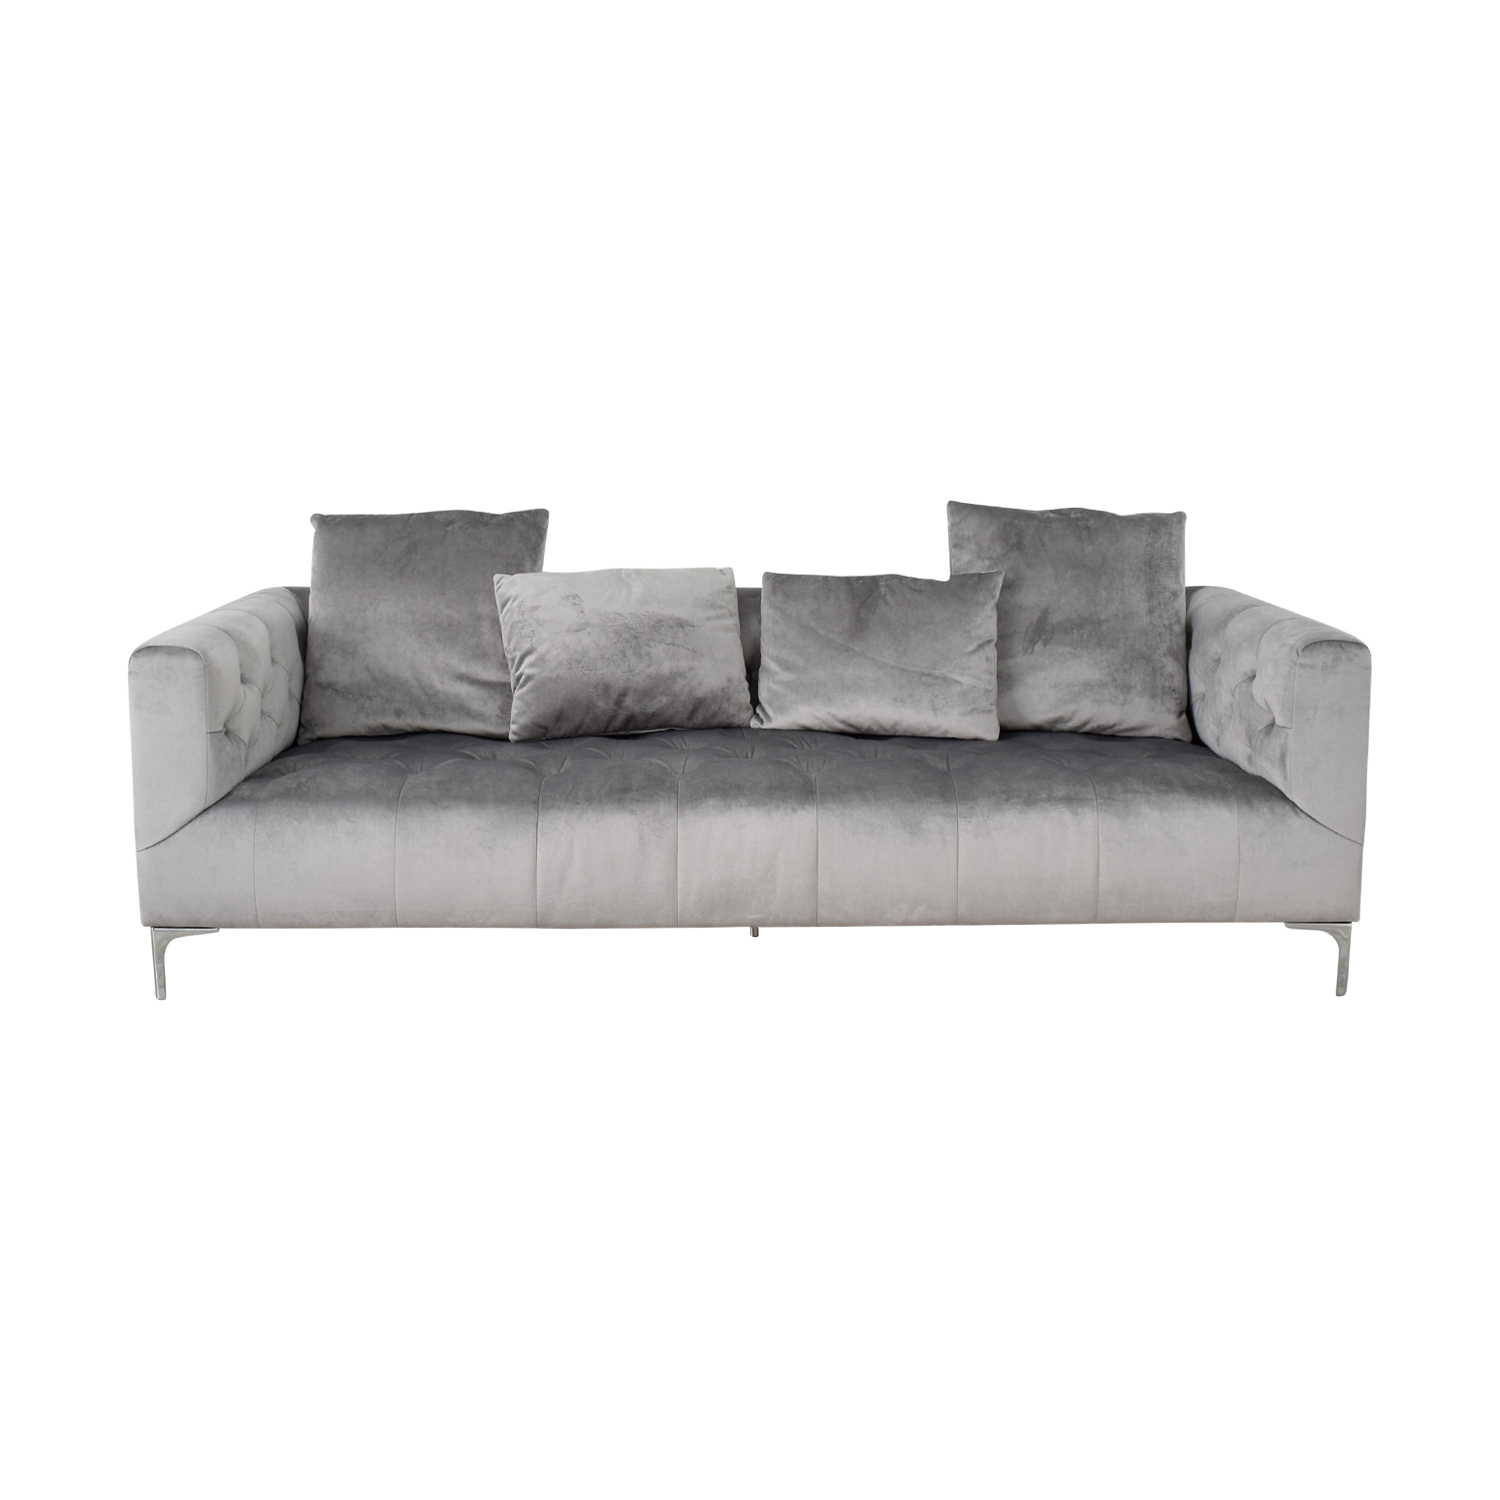 Ms. Chesterfield Grey Tufted Sofa sale